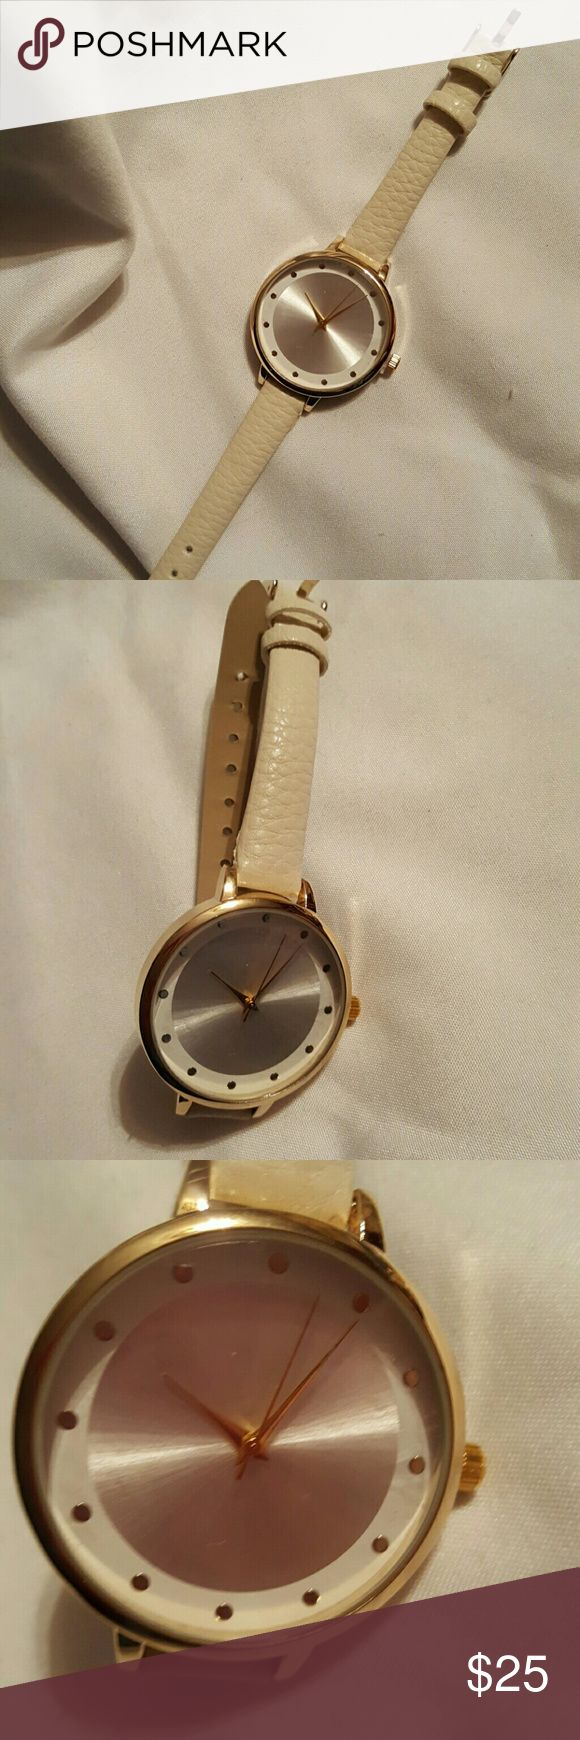 NwT Ladies Big Face Watch Genuine leather strap in ivory and gold tone latch. Gorgeous daylife and nightlife watch. Large face for easy reading. Accessories Watches